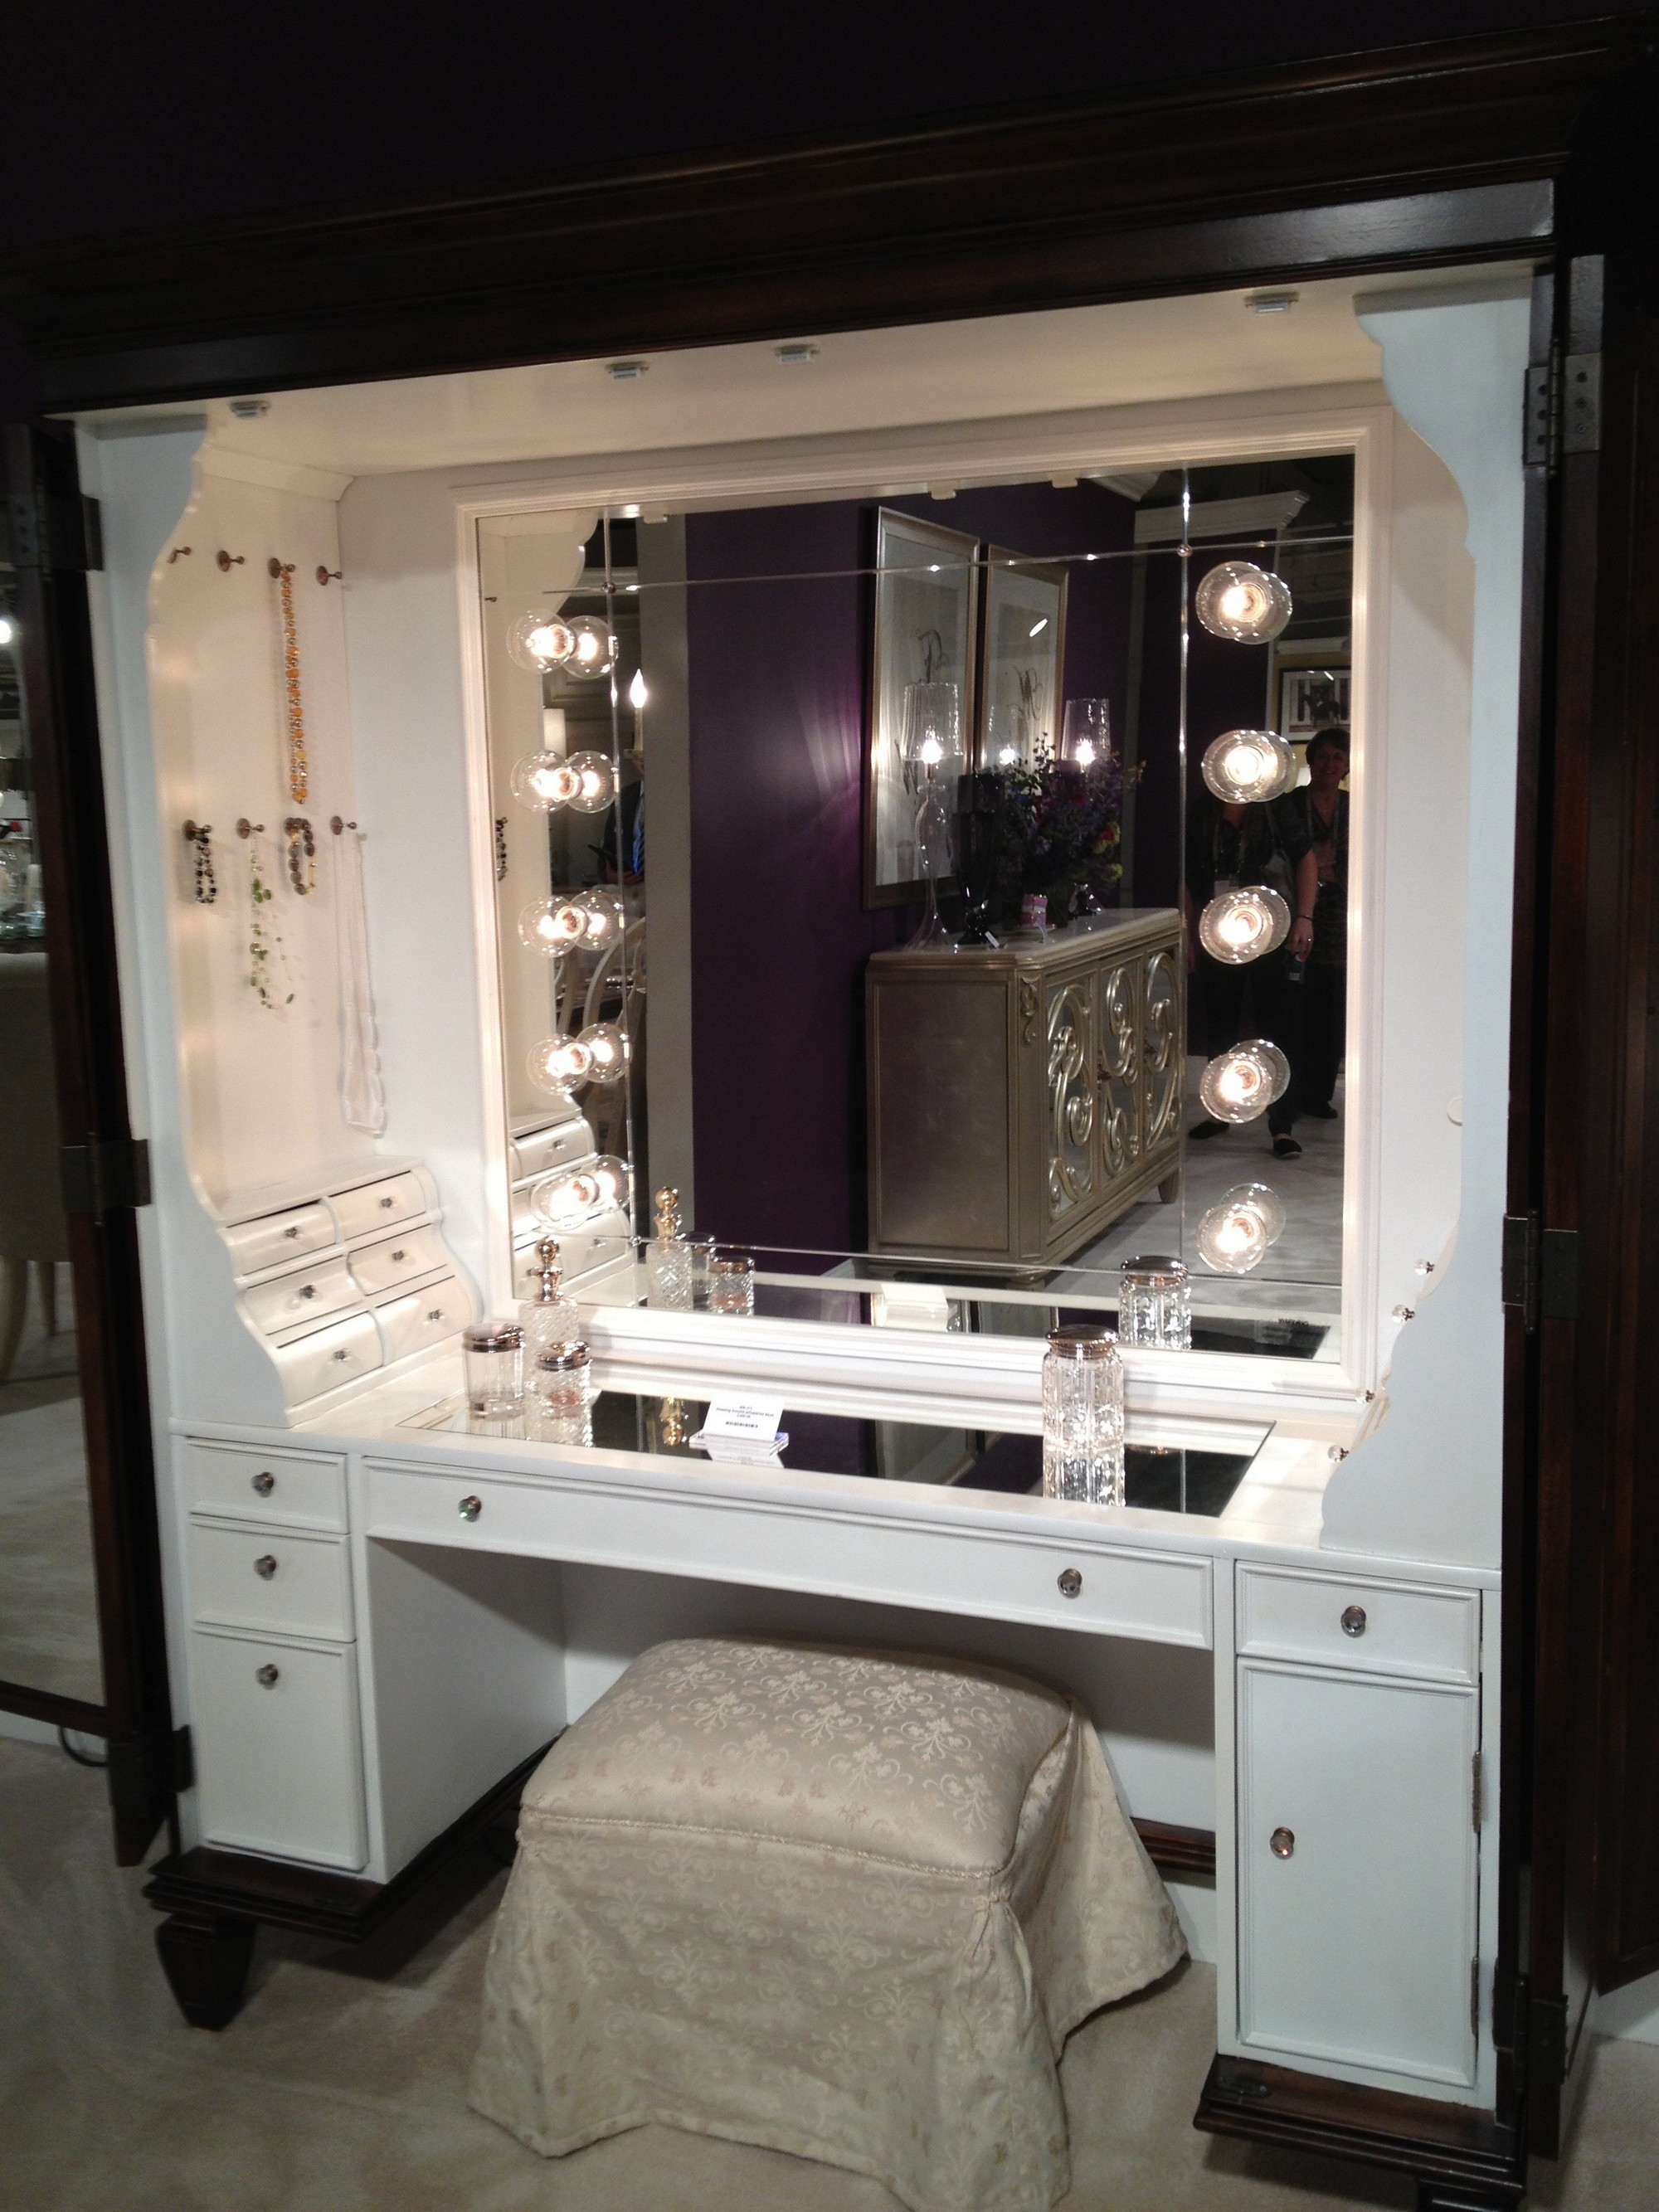 Cool Furniture, Black Makeup Table With Lighted Mirror And Small Fabric Bench:  Show makeup vanity furniture